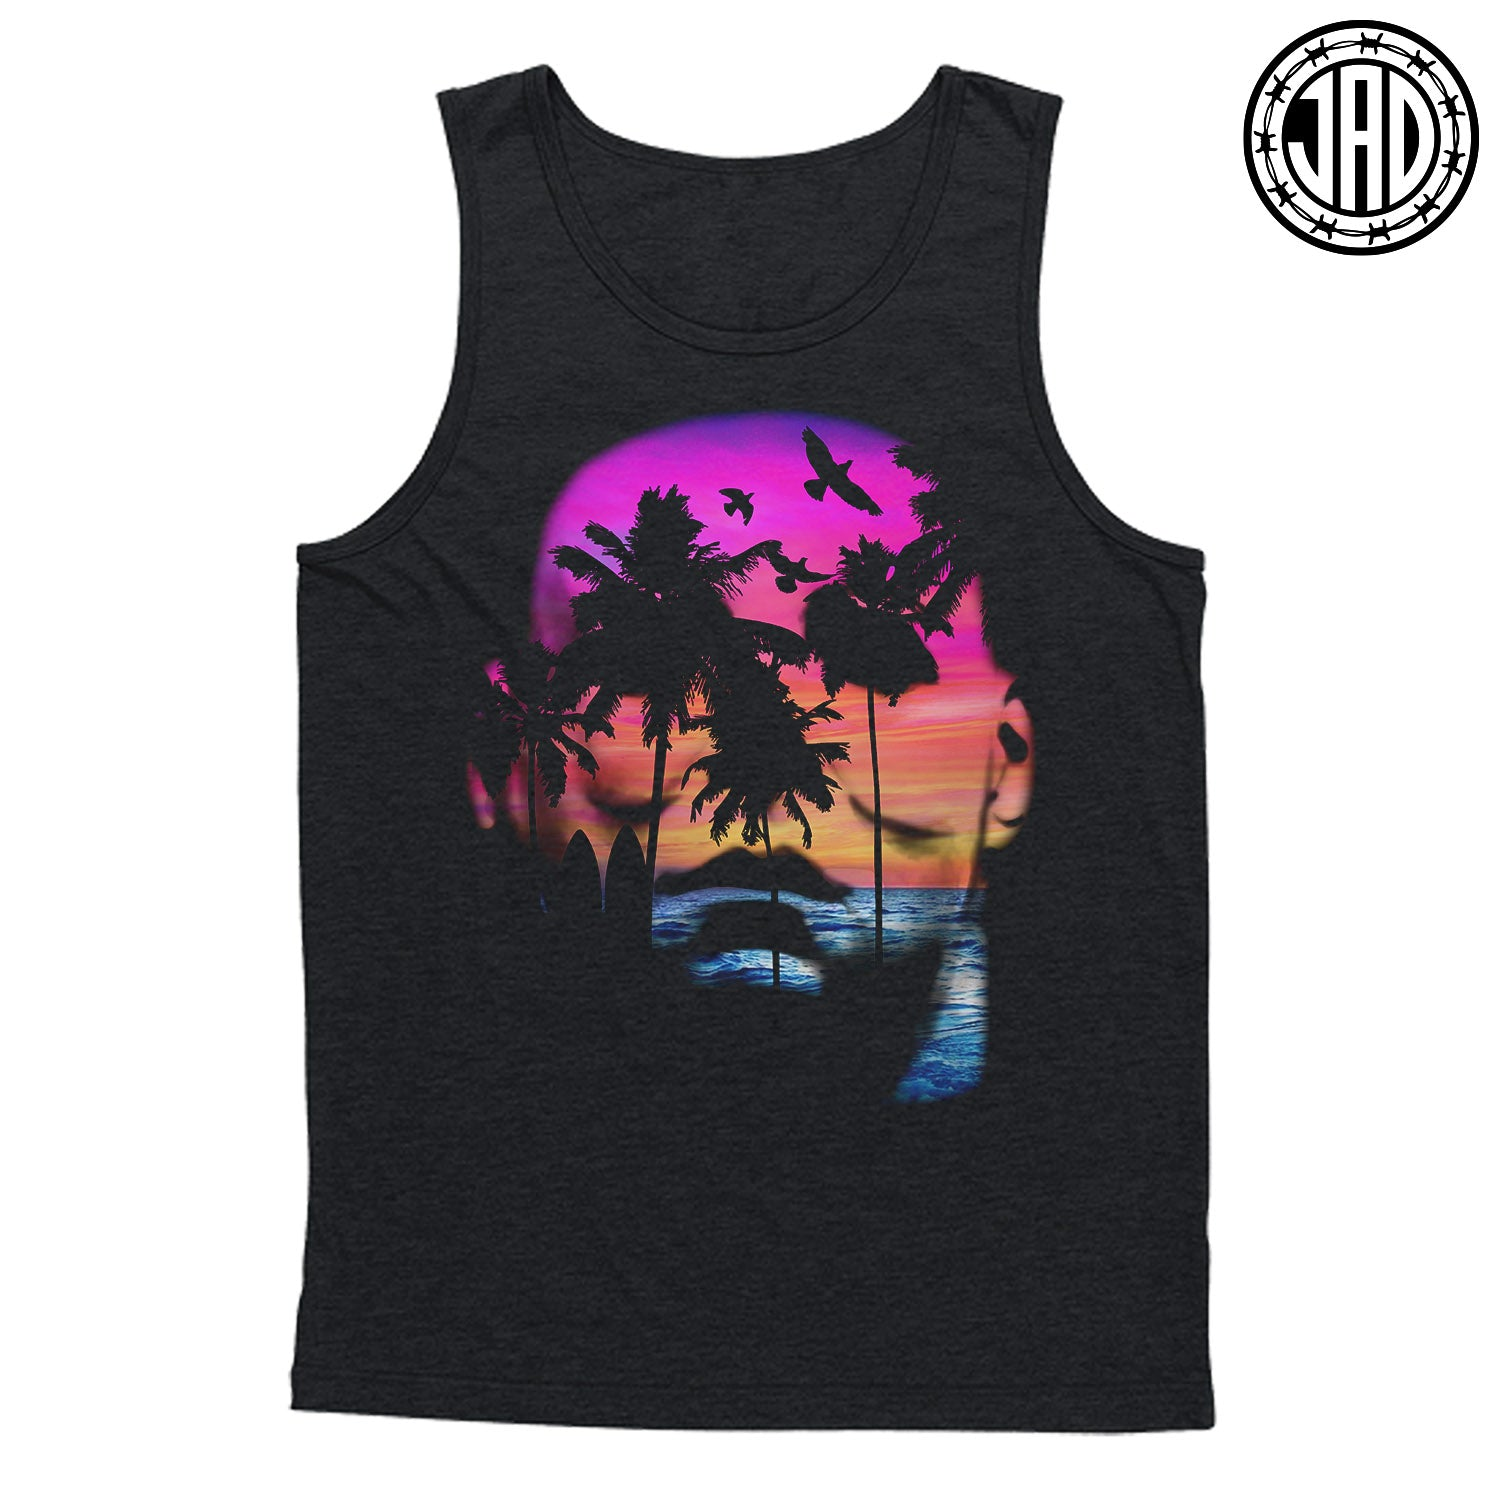 Big Island Mike - Men's (Unisex) Tank